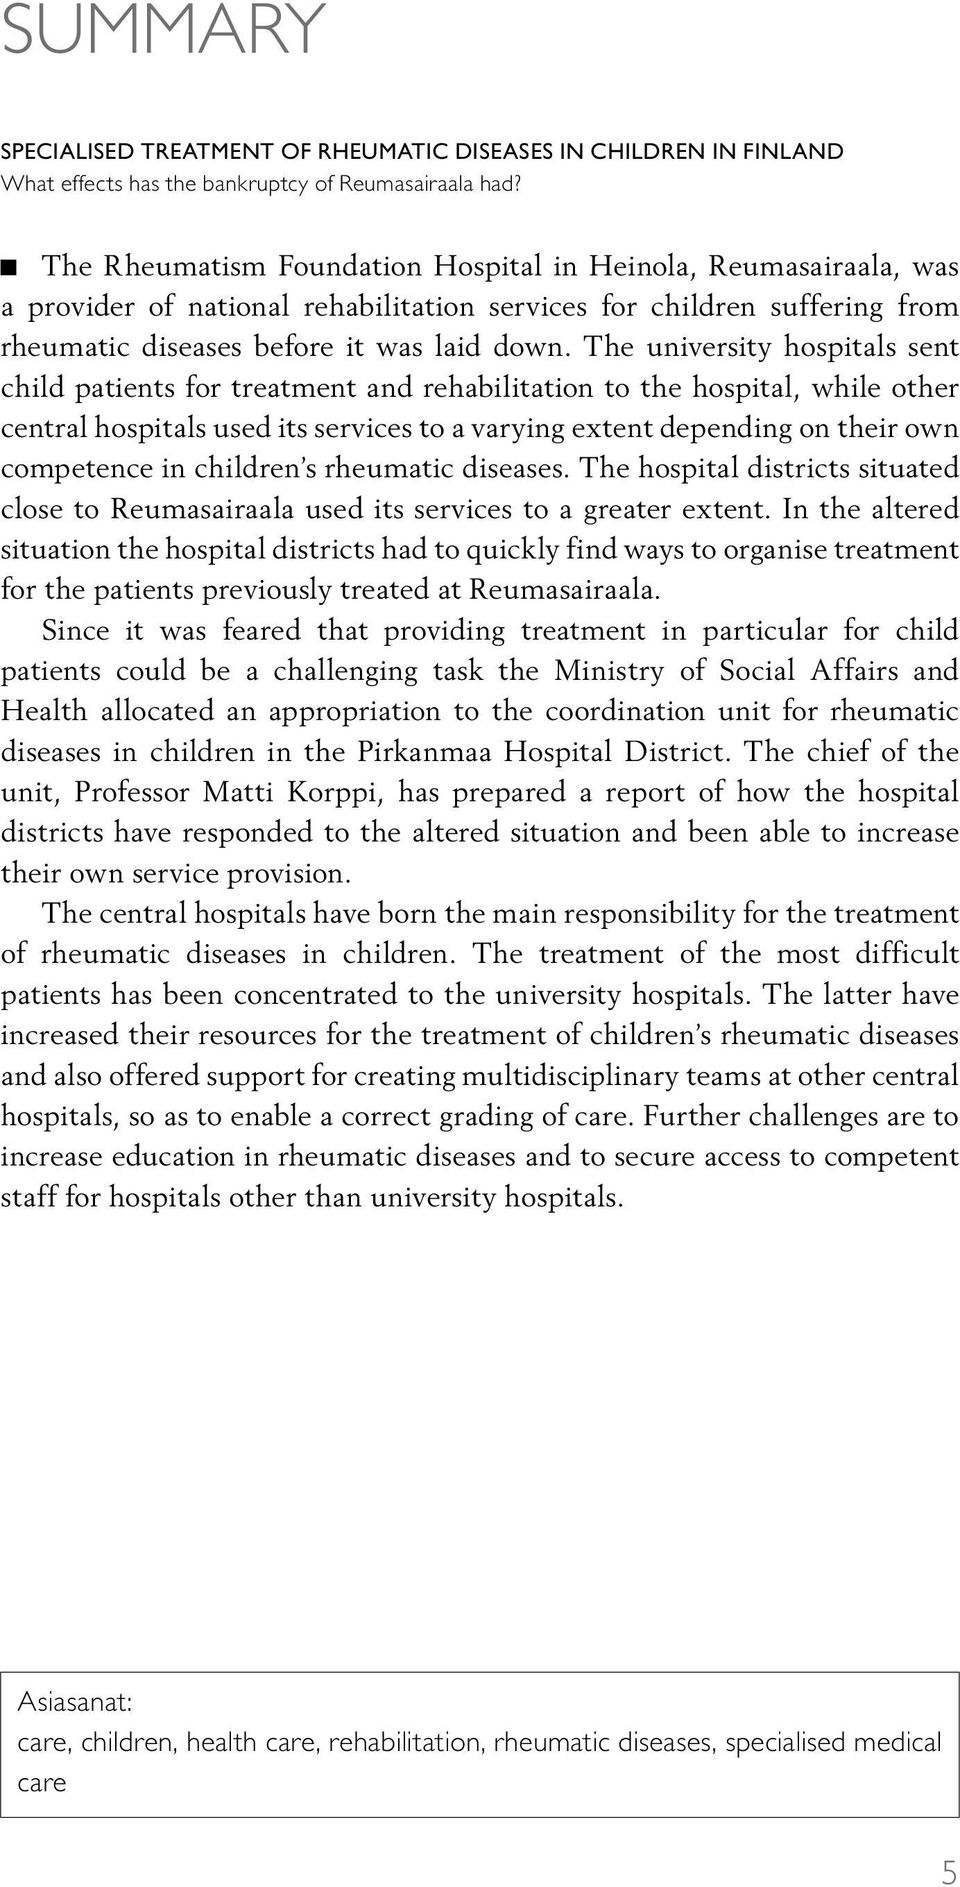 The university hospitals sent child patients for treatment and rehabilitation to the hospital, while other central hospitals used its services to a varying extent depending on their own competence in